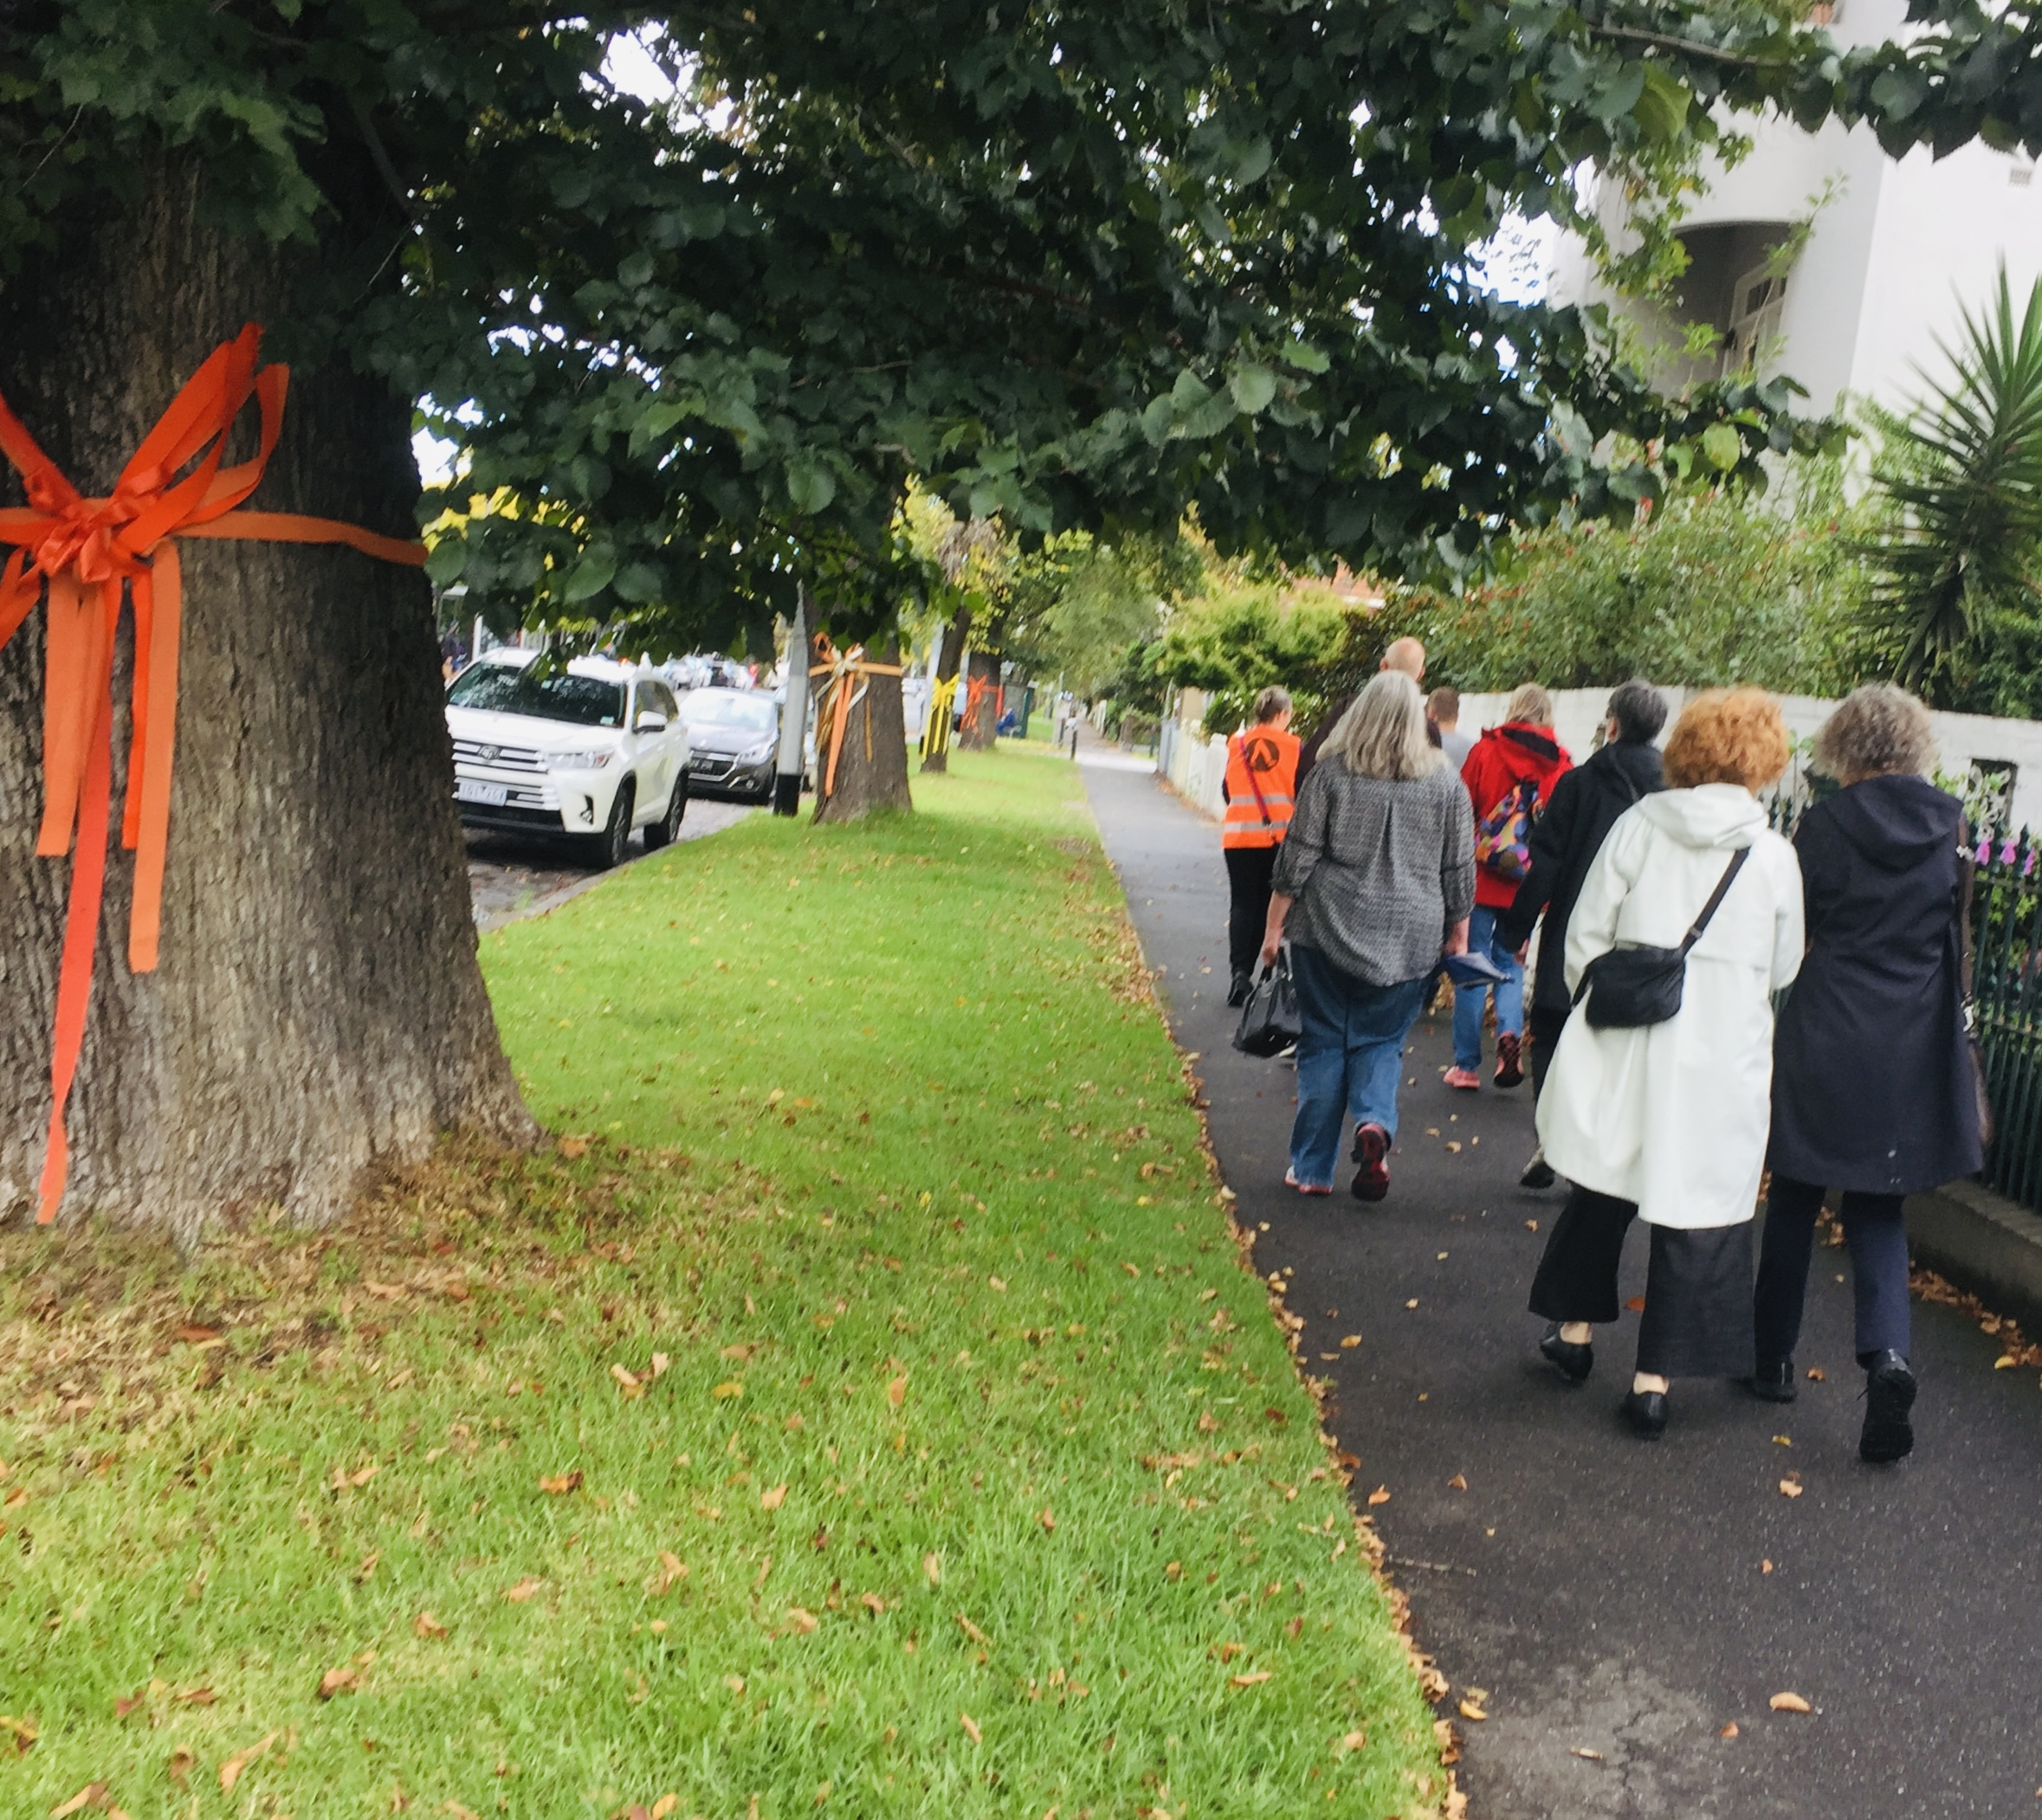 Albert Park Art Walk - Art tours